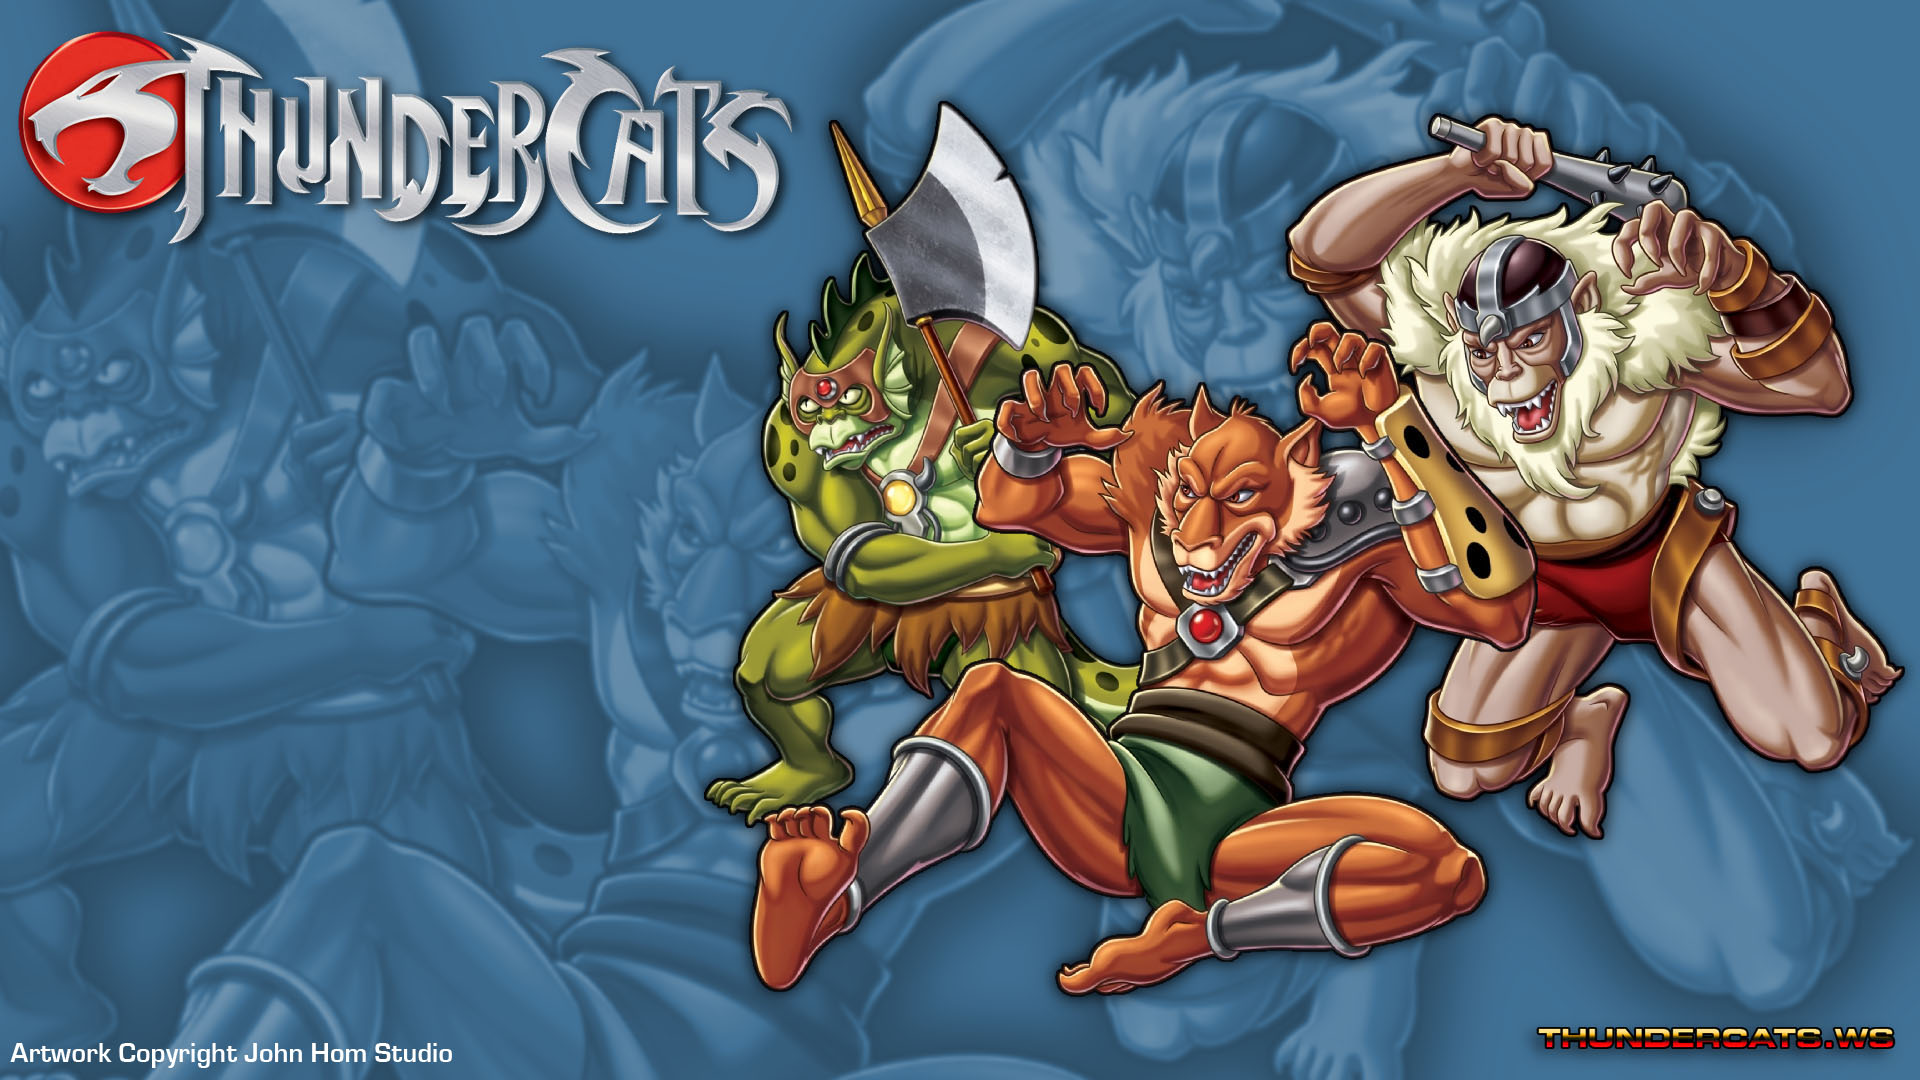 http://news.thundercats.ws/wp-content/uploads/sites/6/2011/05/Thundercats-Wallpaper-16-HD_1304284845.jpg